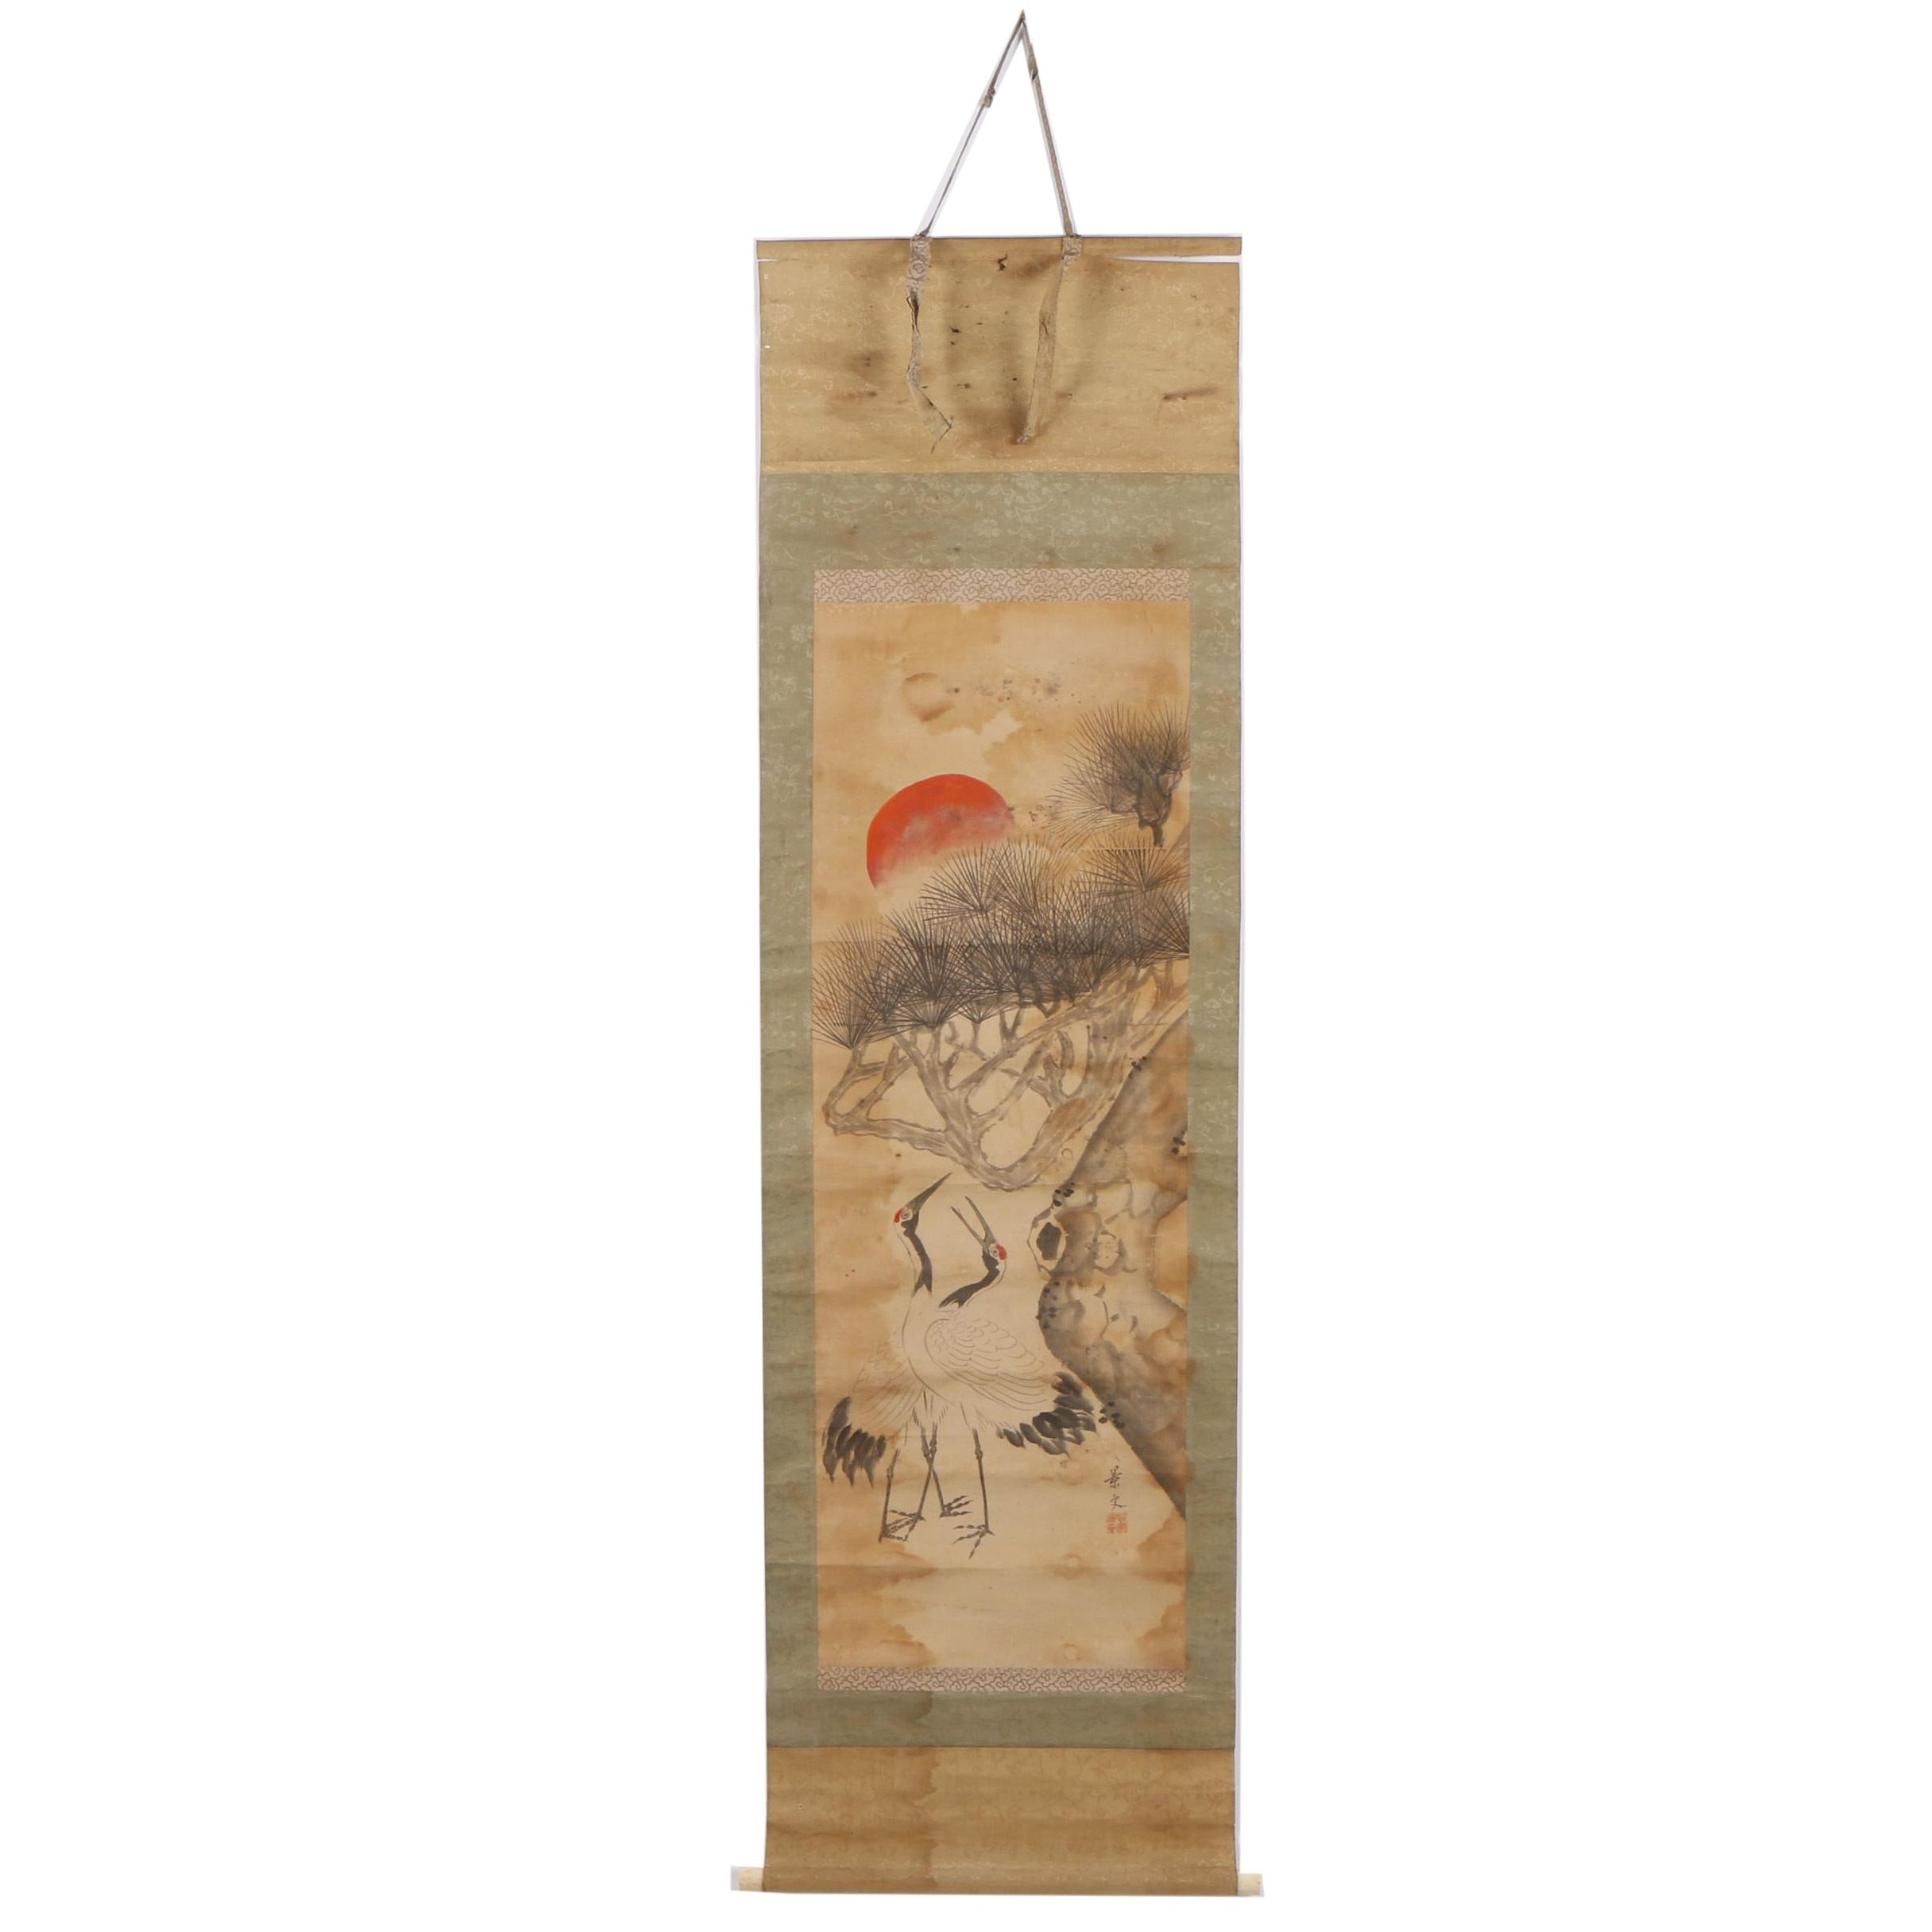 East Asian Ink & Gouache Painting Hanging Scroll of a Cranes